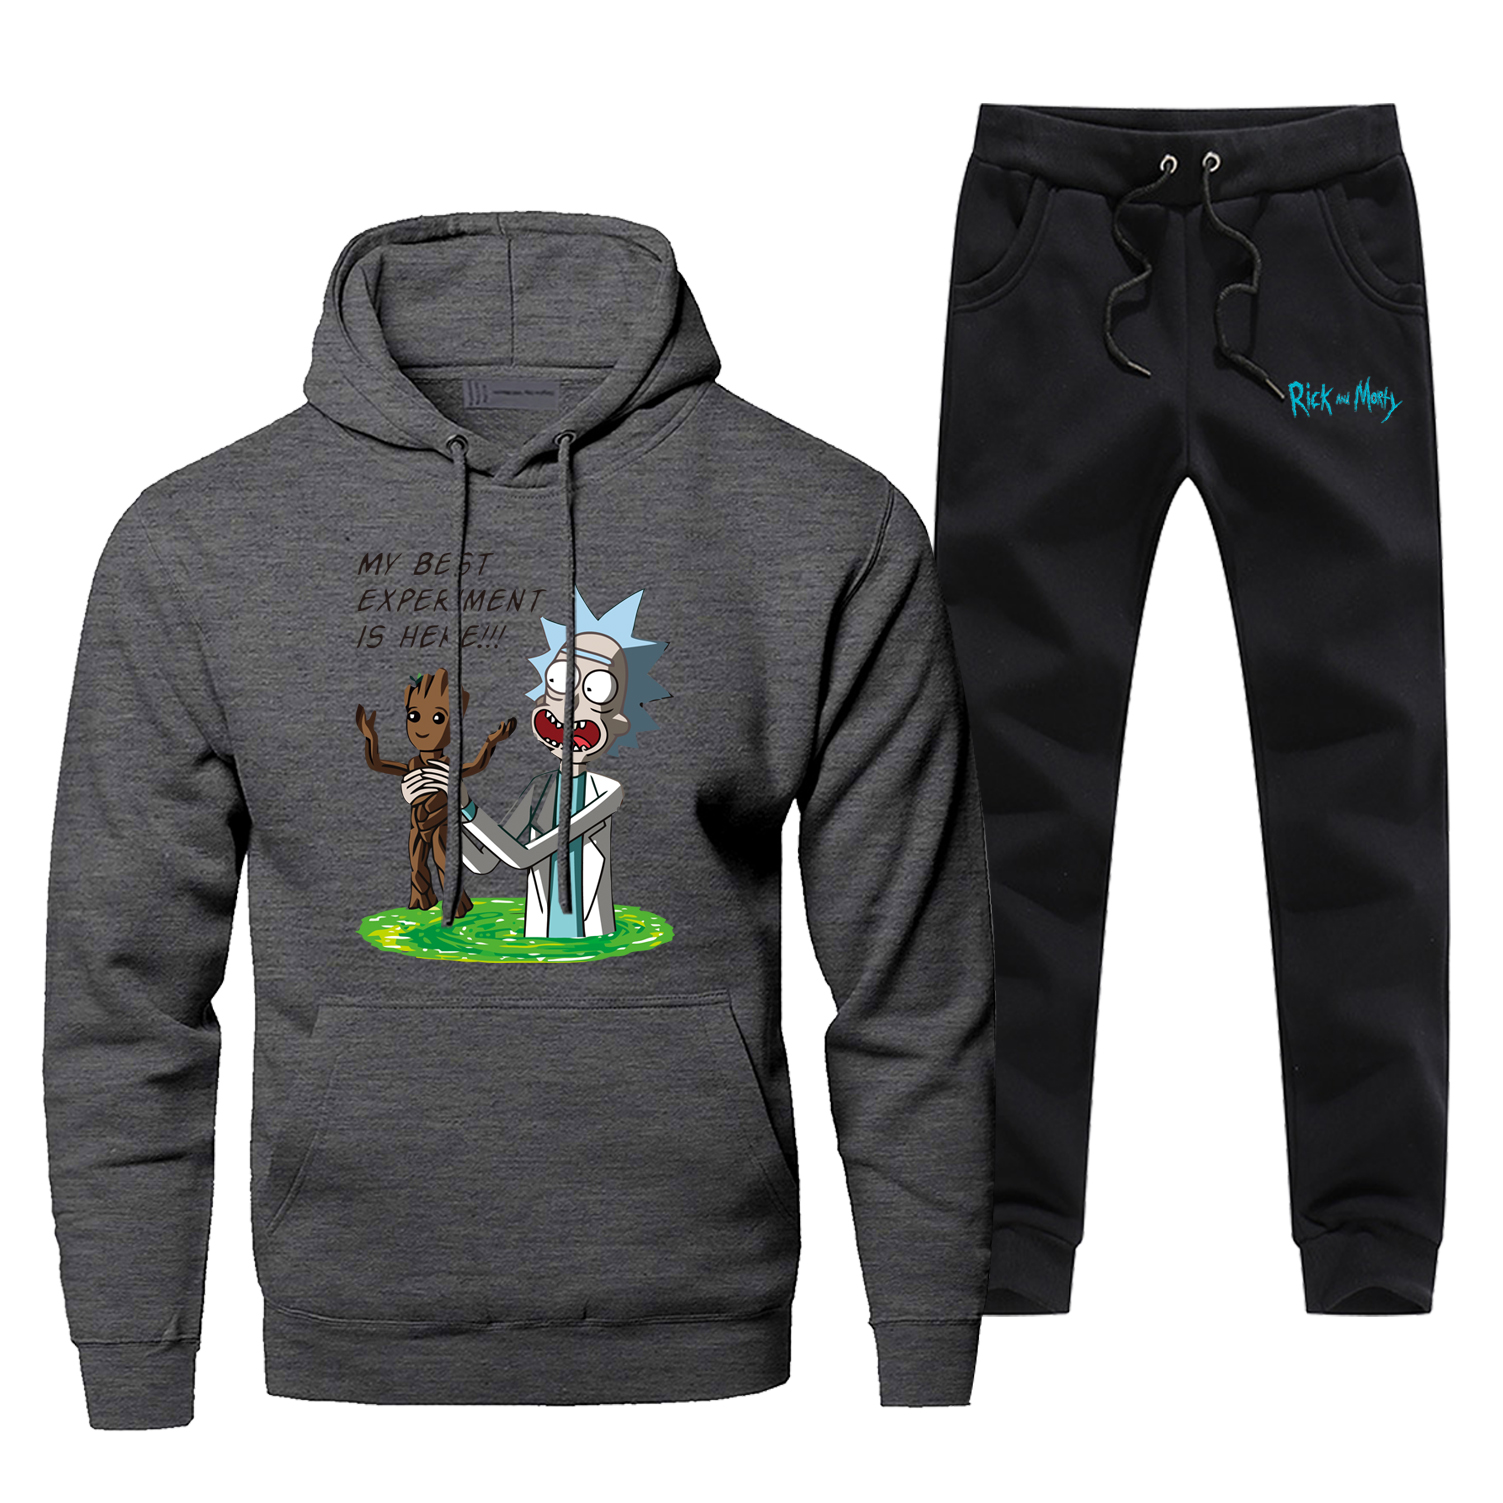 Groot Hoodie Pants Set Rick And Morty Men Sweatshirt Male Hoodies Sweatshirts Mens Sets Two Piece Pant Funny Hoody Cartoon Coat